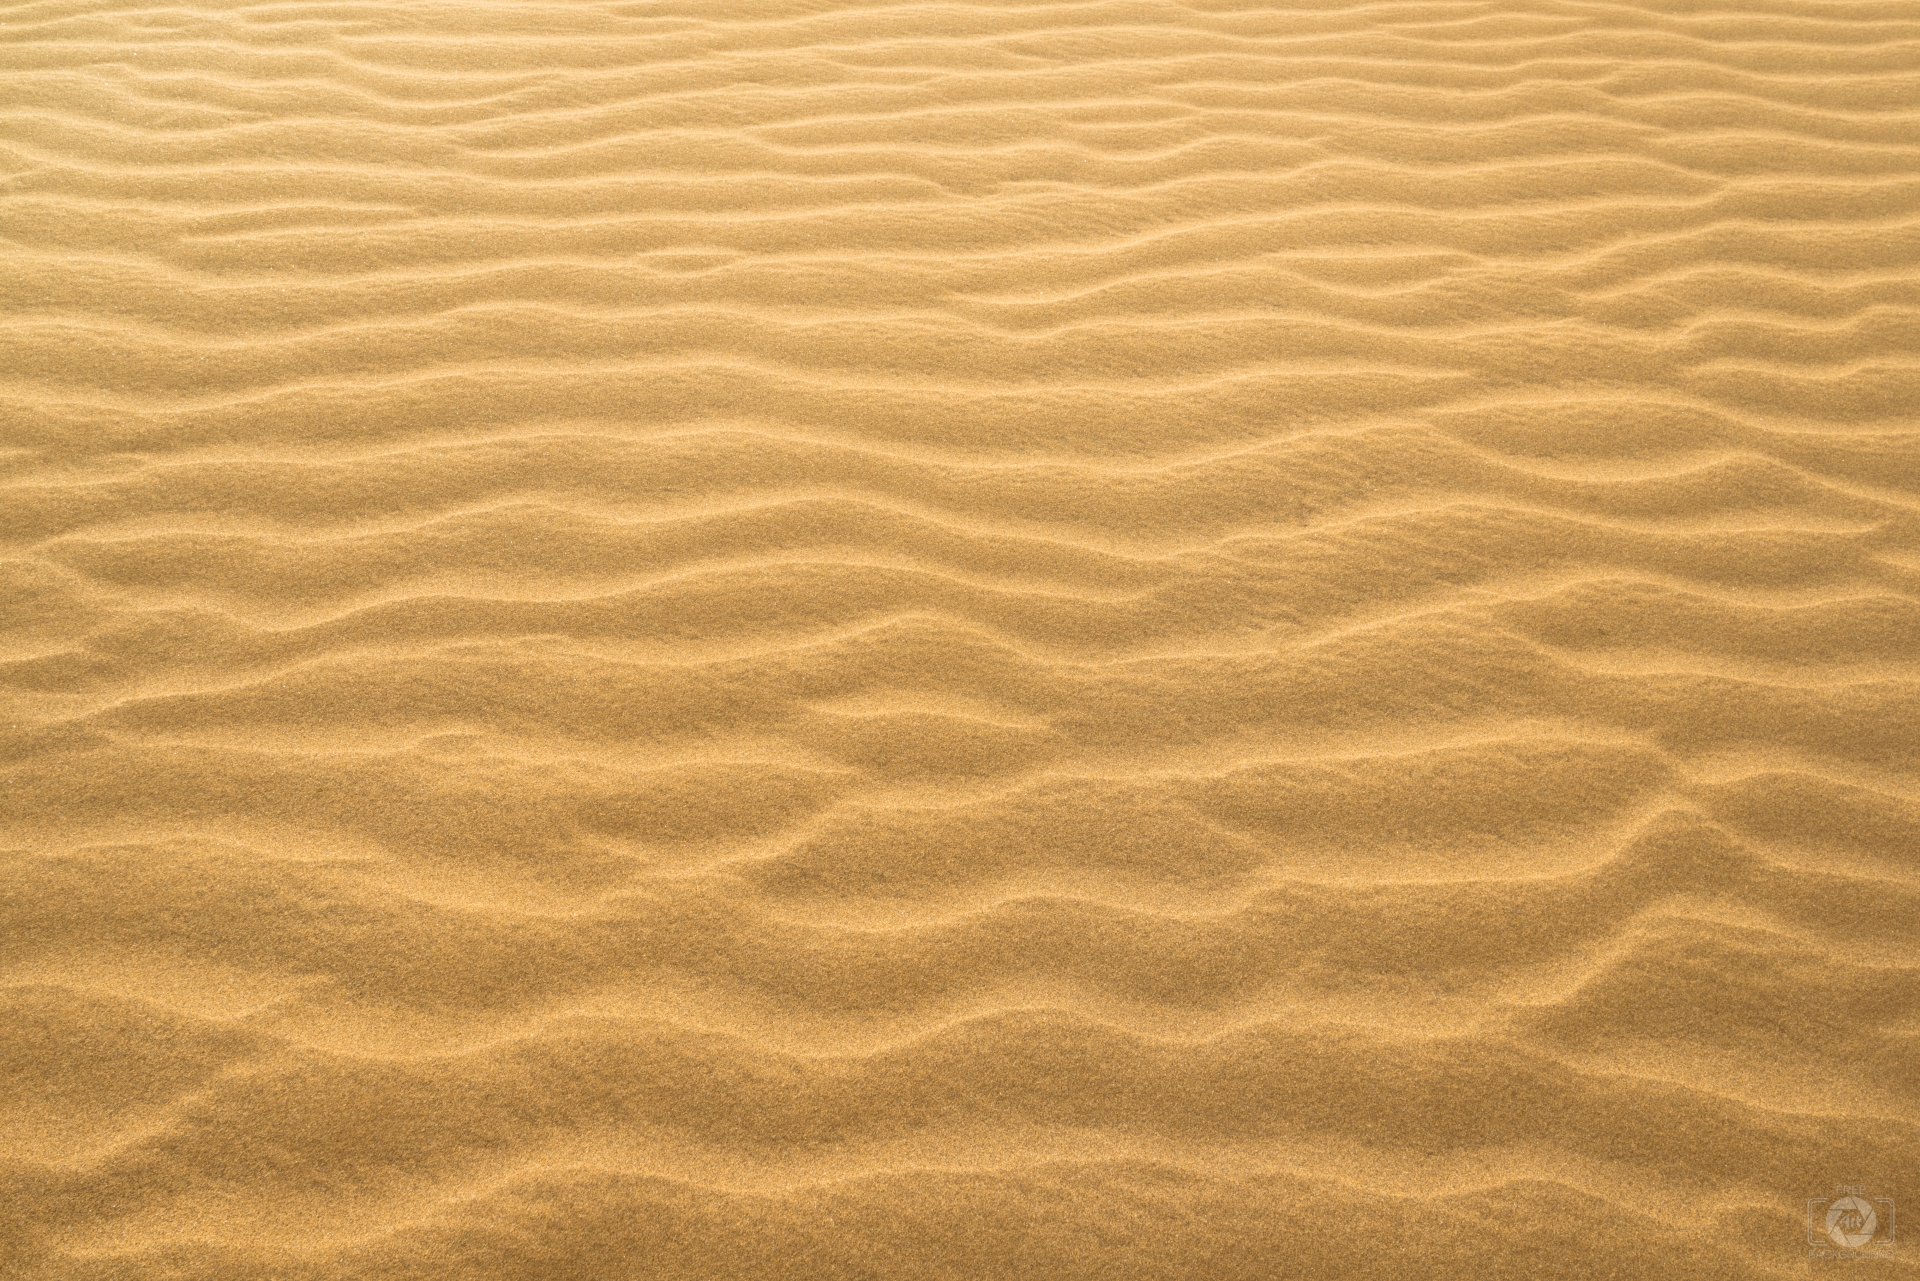 Desert Sand Texture - High-quality Free Backgrounds